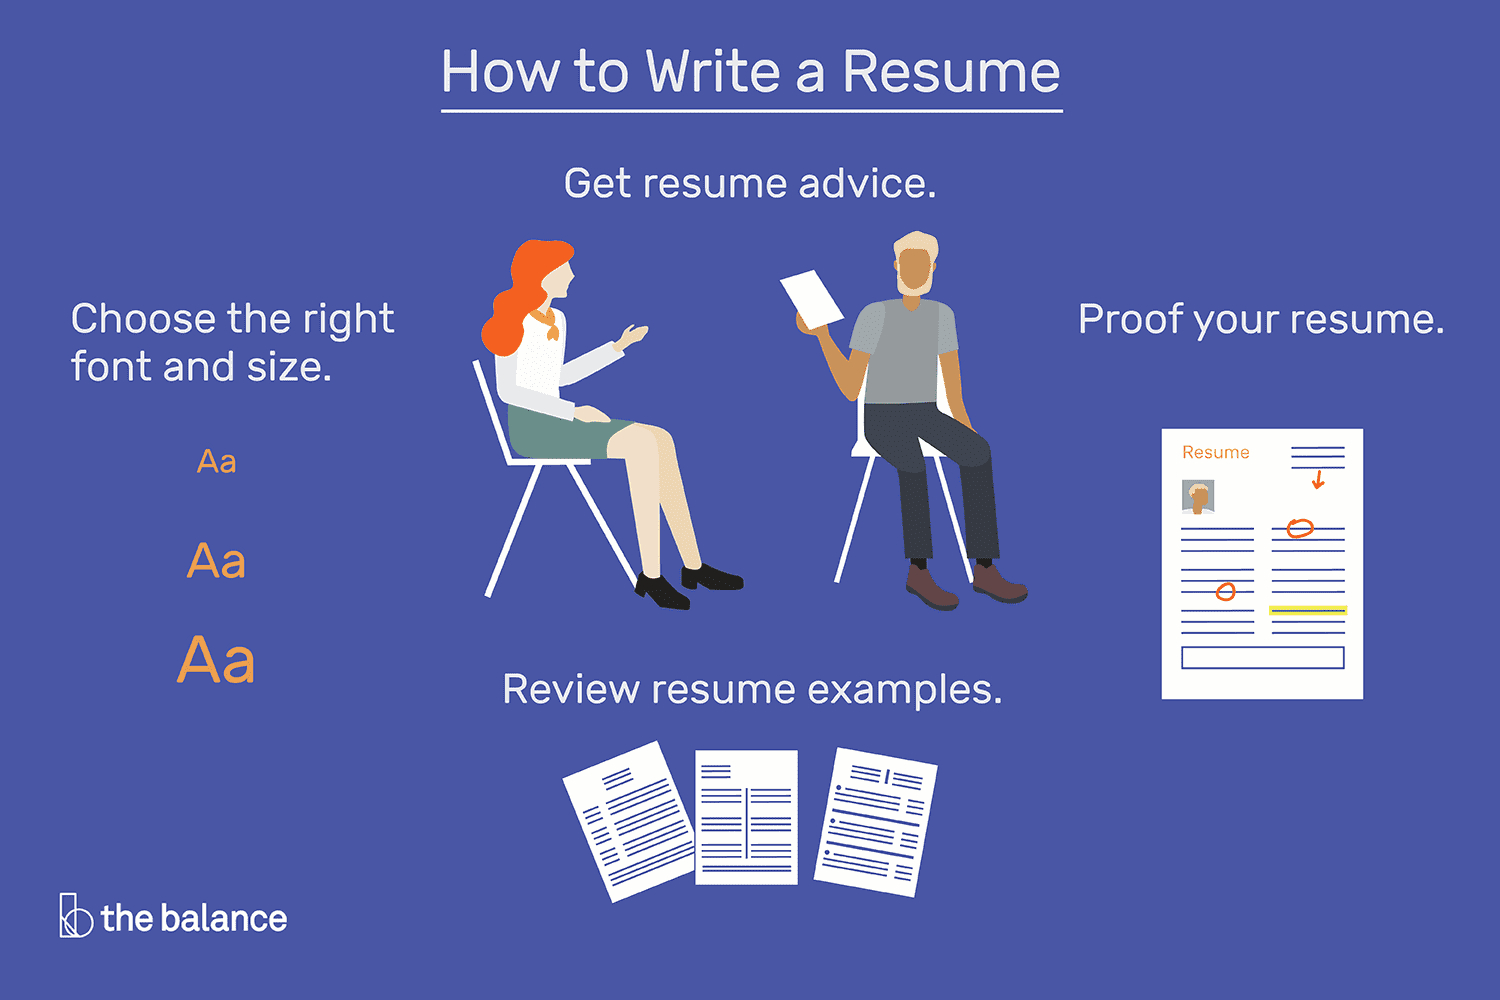 Guaranteed Resume Writing Services - How to Write A Resume that Will Get You An Interview